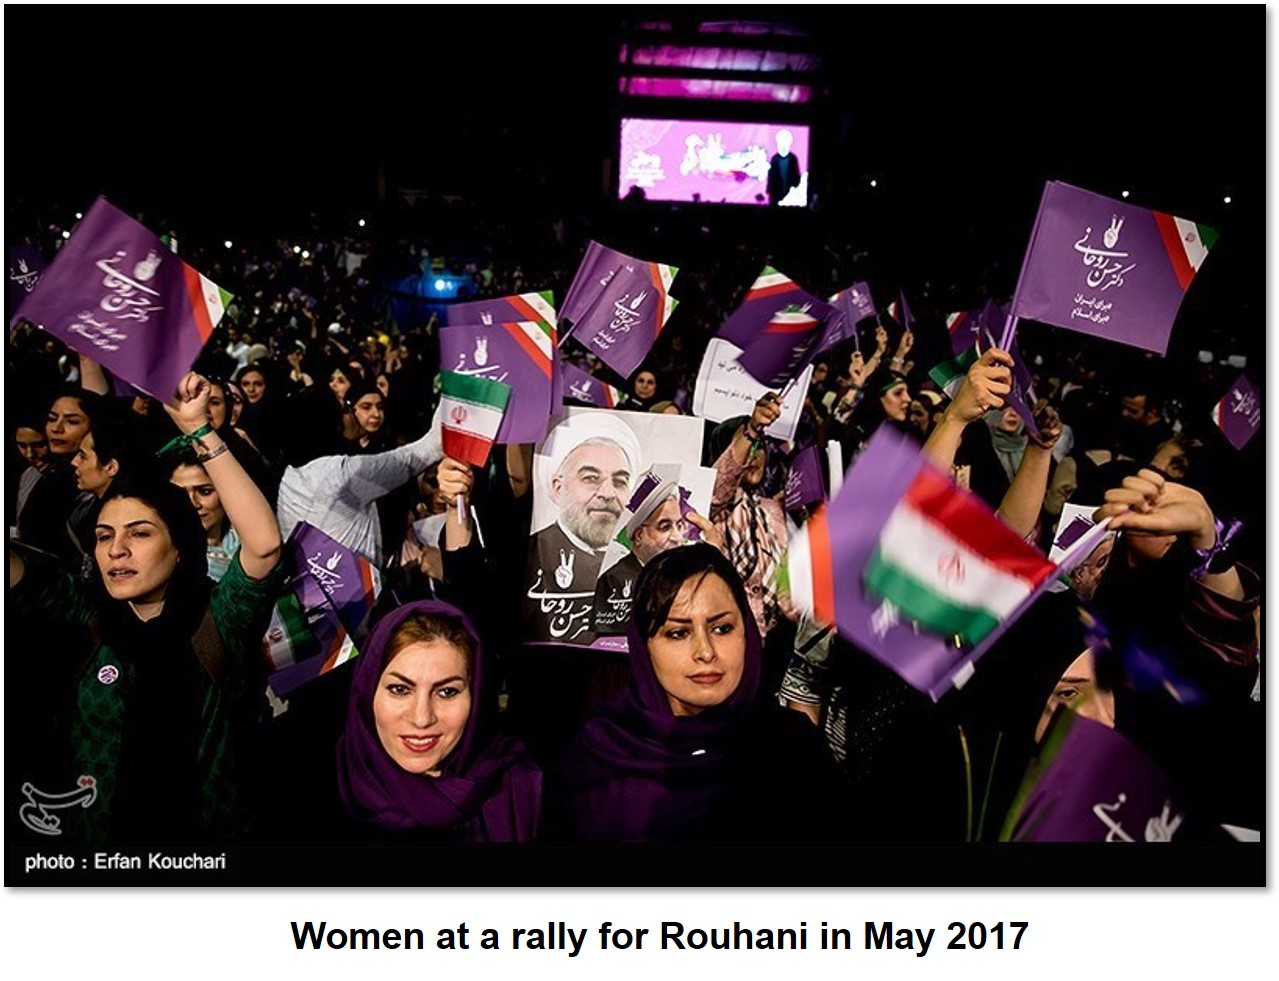 Rouhani female supporters